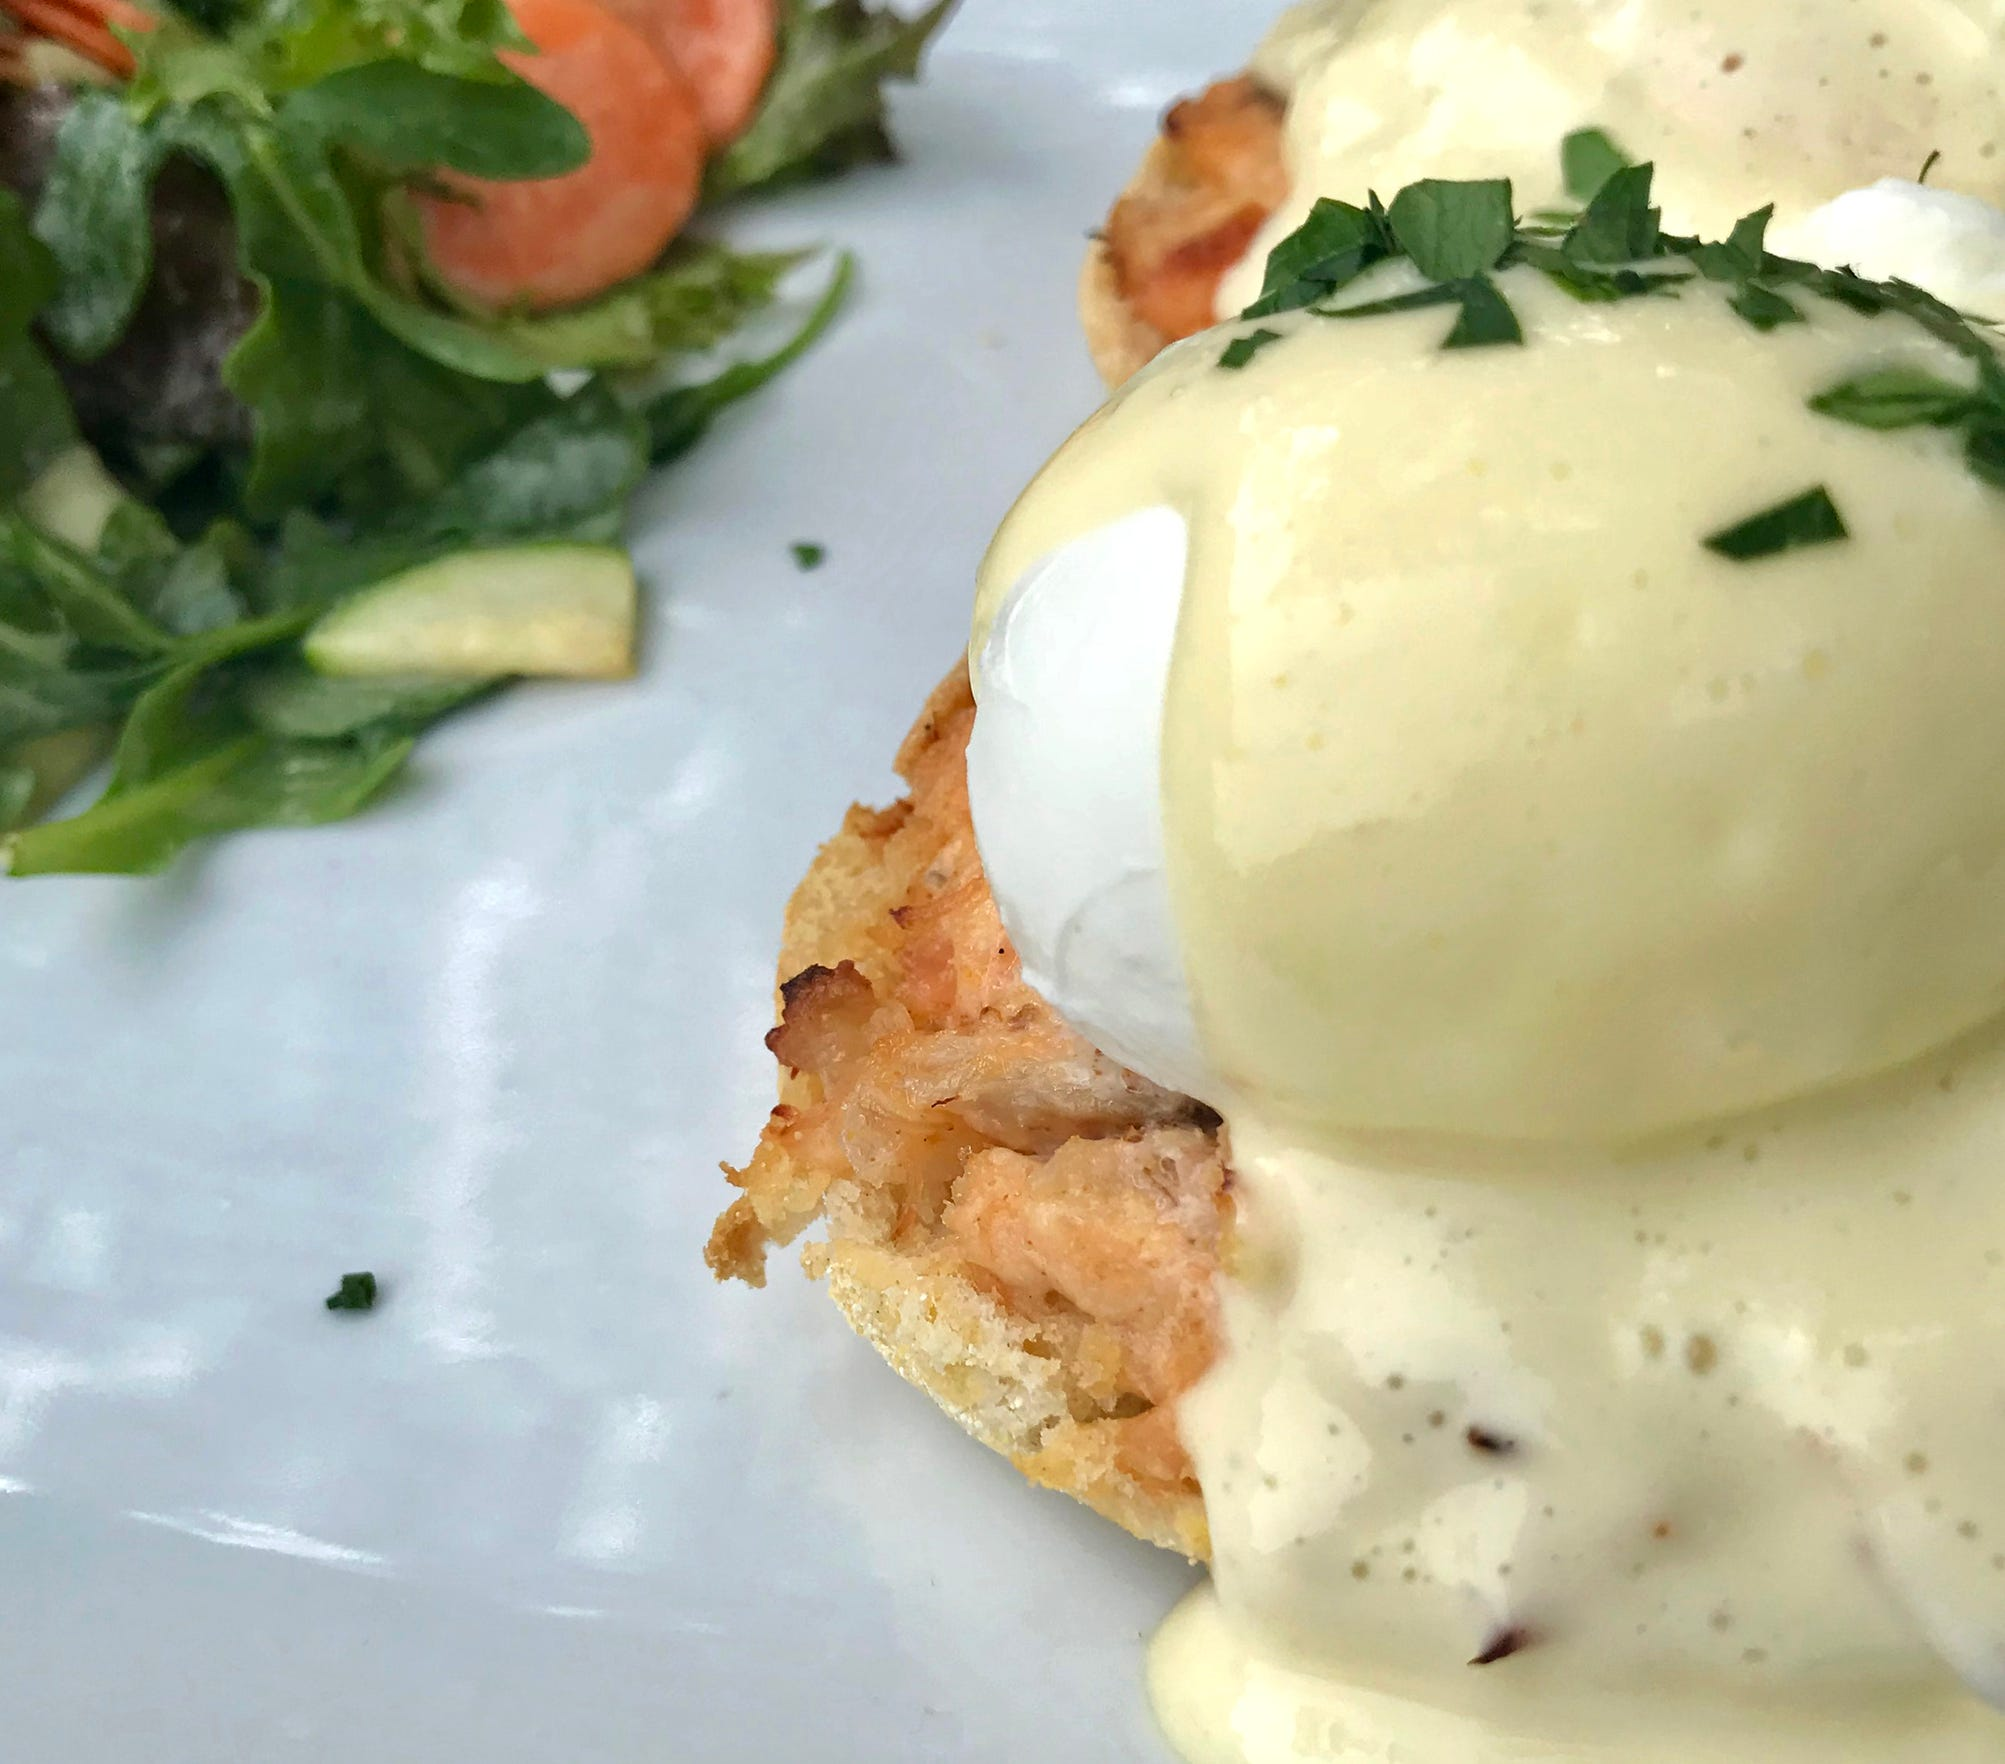 Smoked-salmon Benedict,  made with cakes of house-smoked salmon rillettes, is a weekend brunch dish at Engine Company No. 3, 217 W. National Ave.